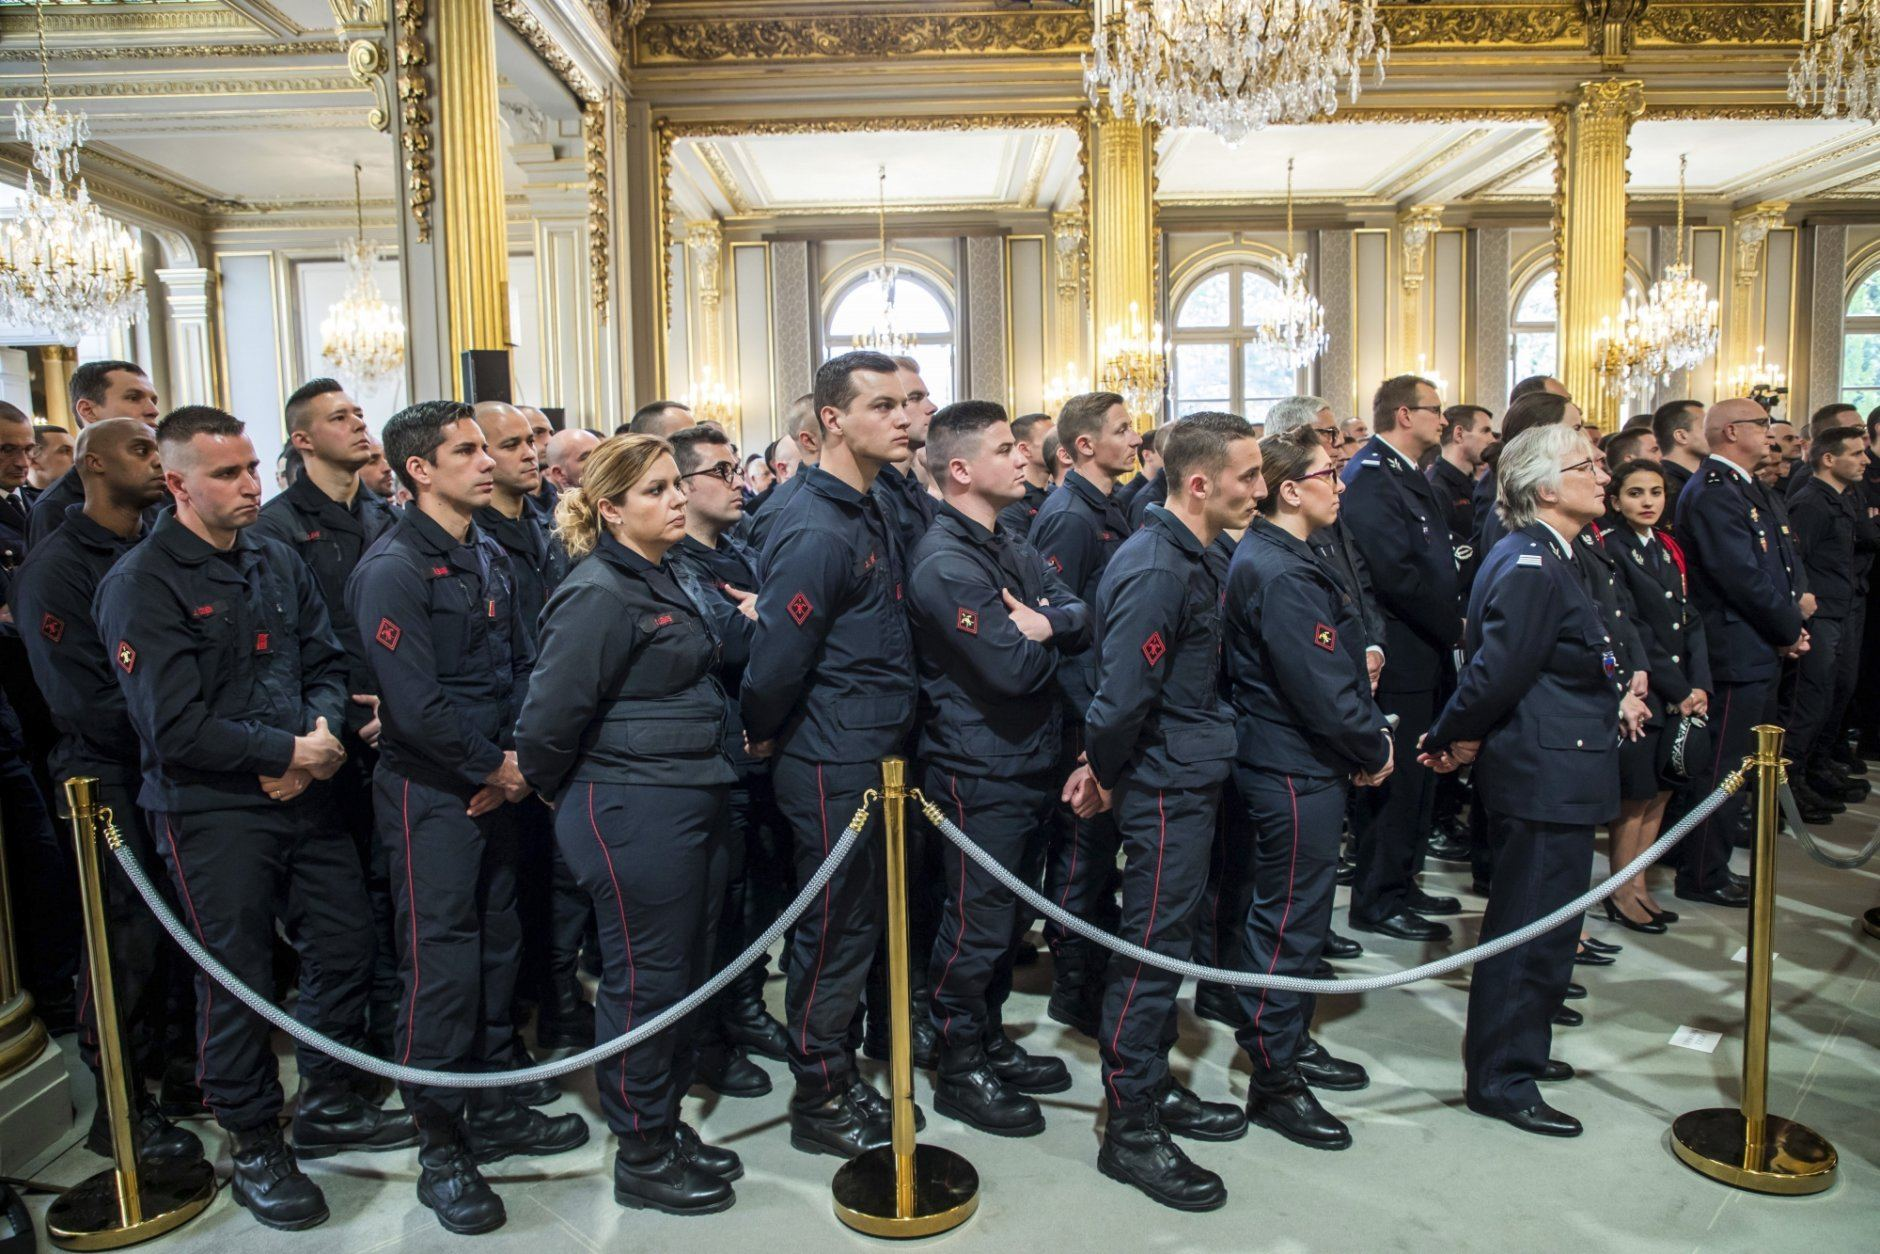 Parisian Firefighters' brigade at the Elysee Palace in Paris